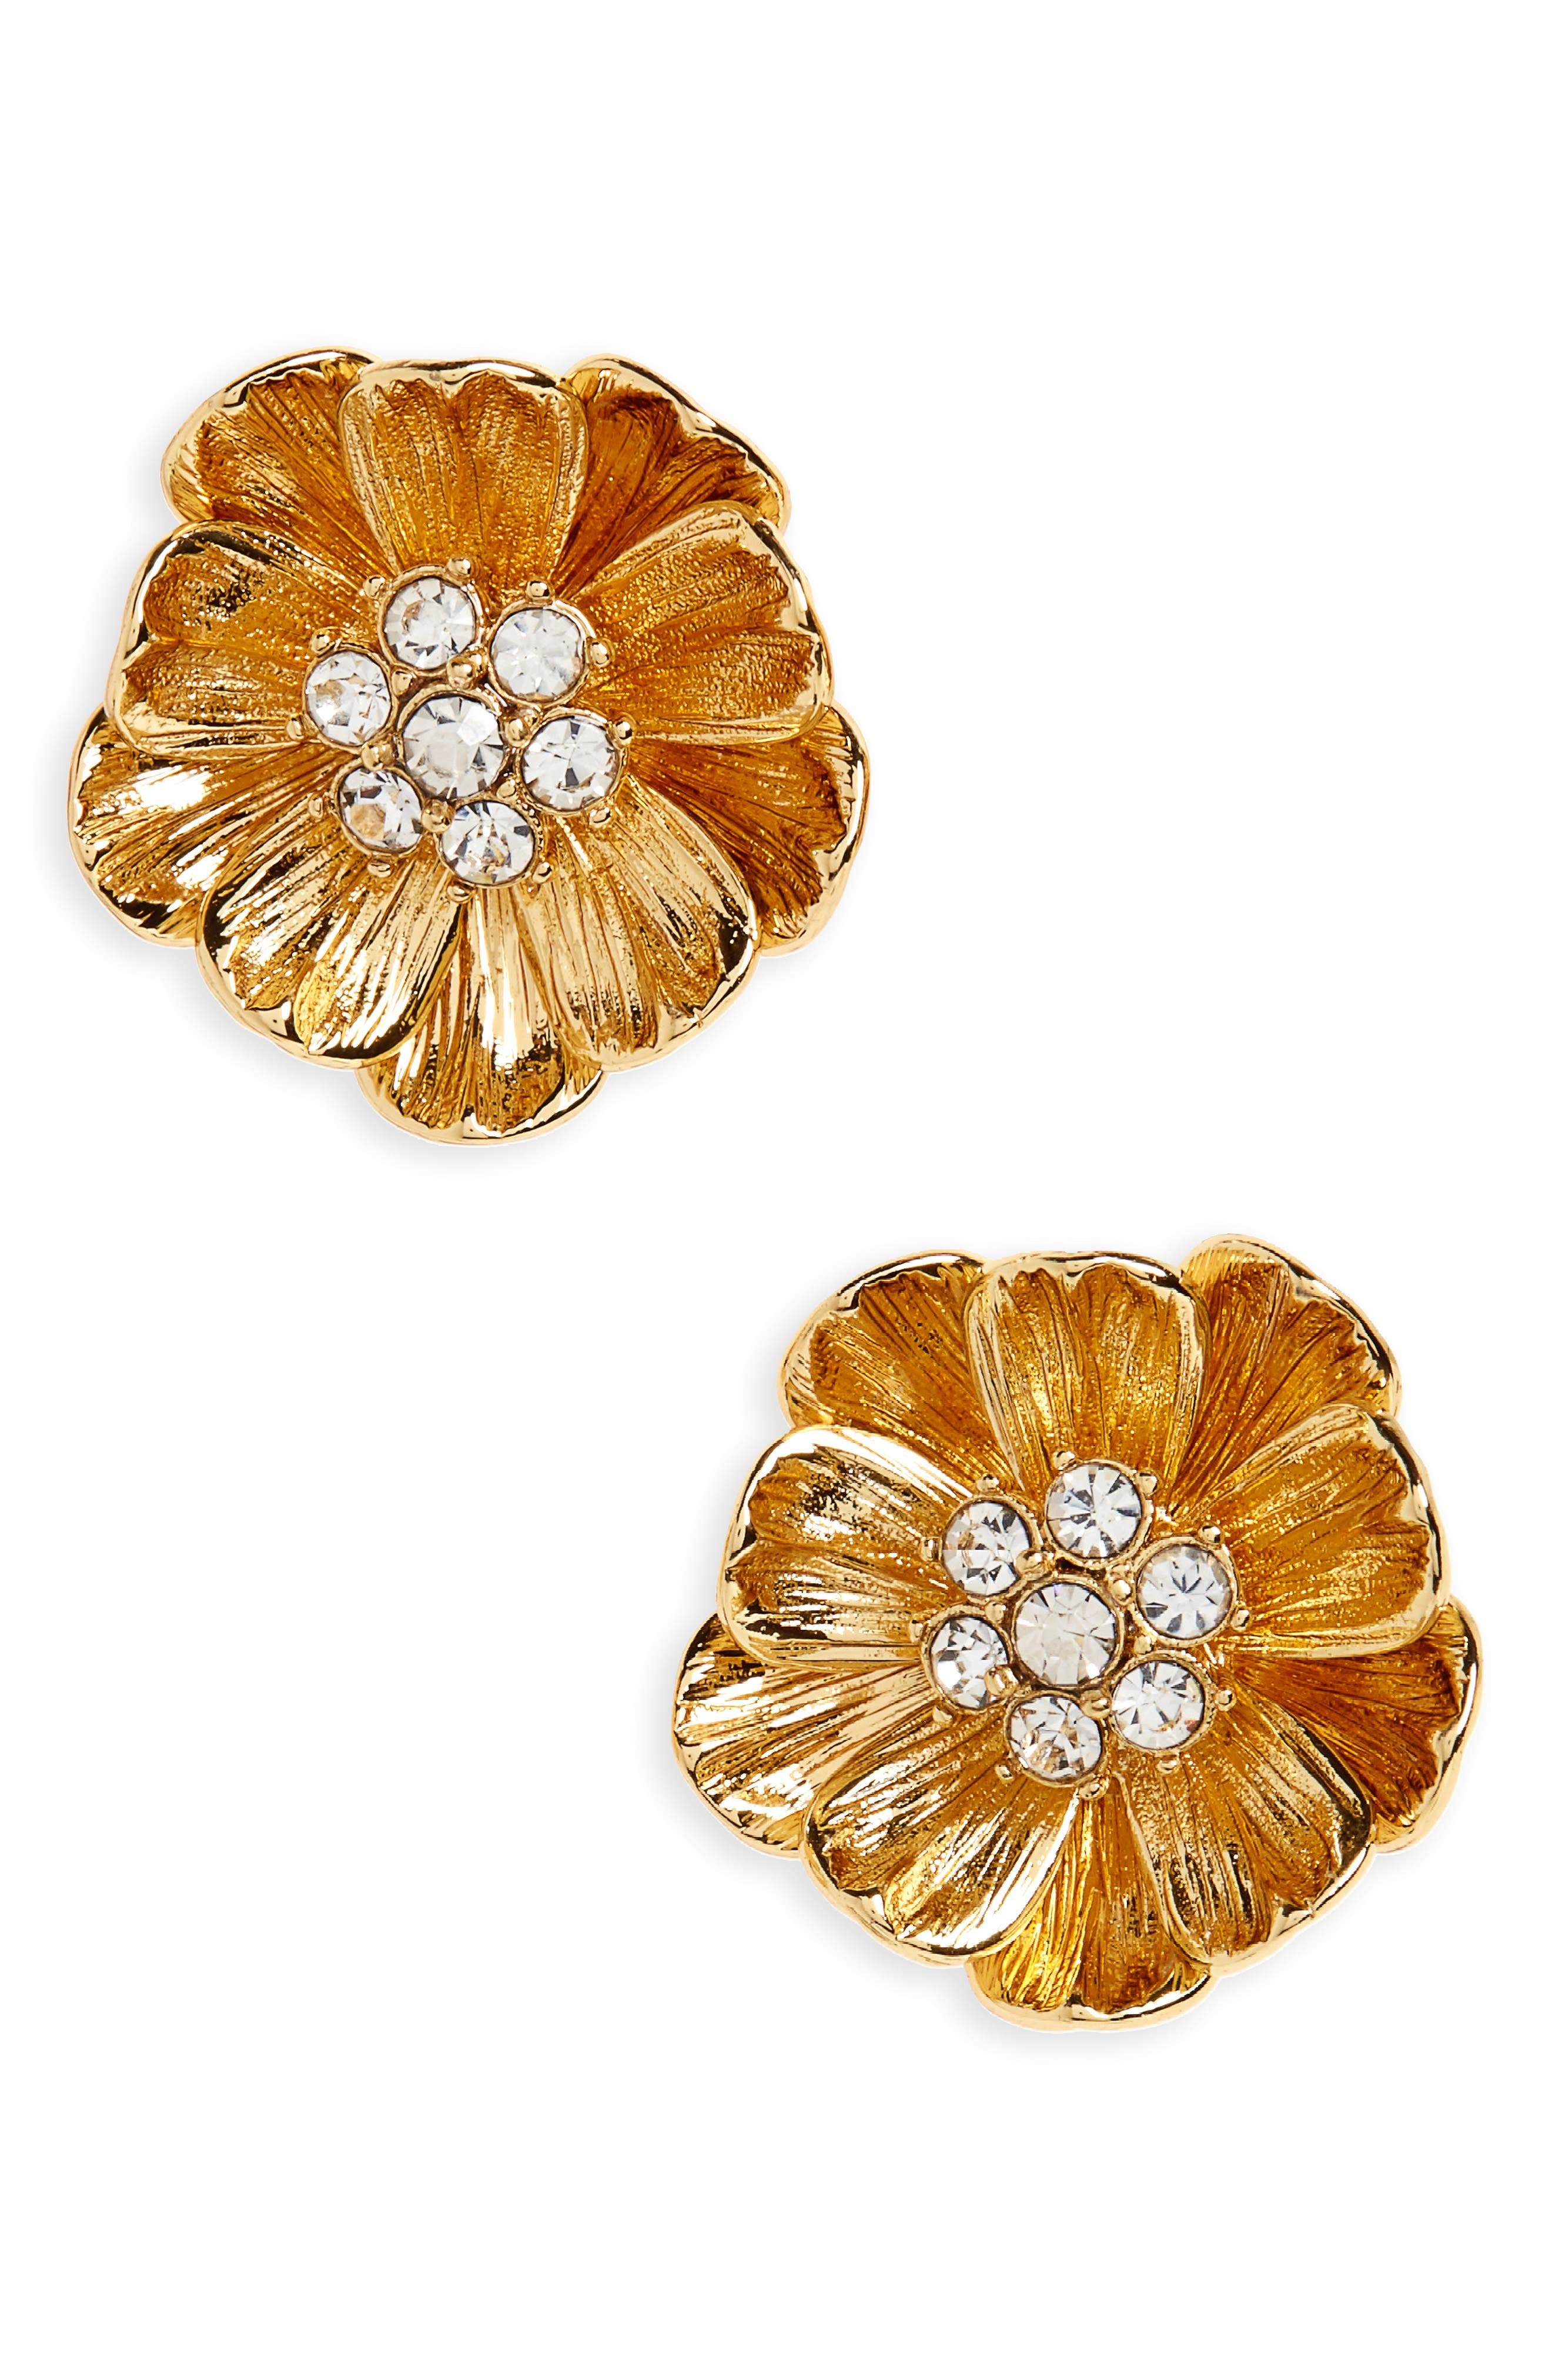 Alternate Image 1 Selected - kate spade new york precious poppies stud earrings